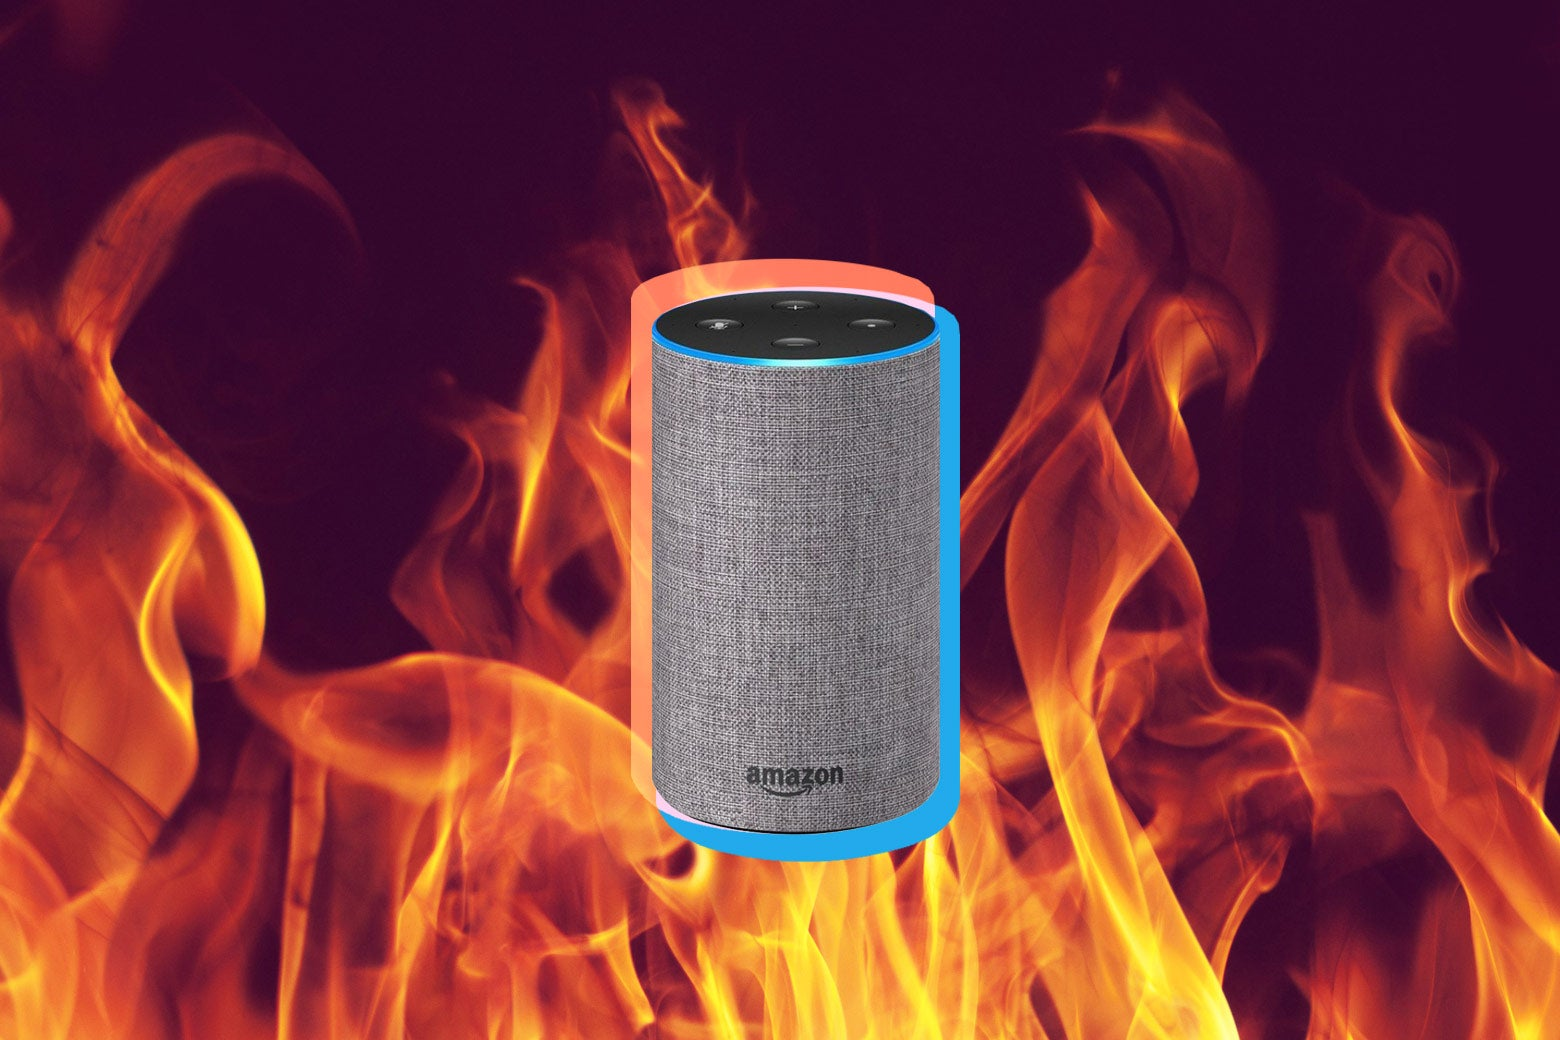 An Amazon Echo, surrounded by flames.